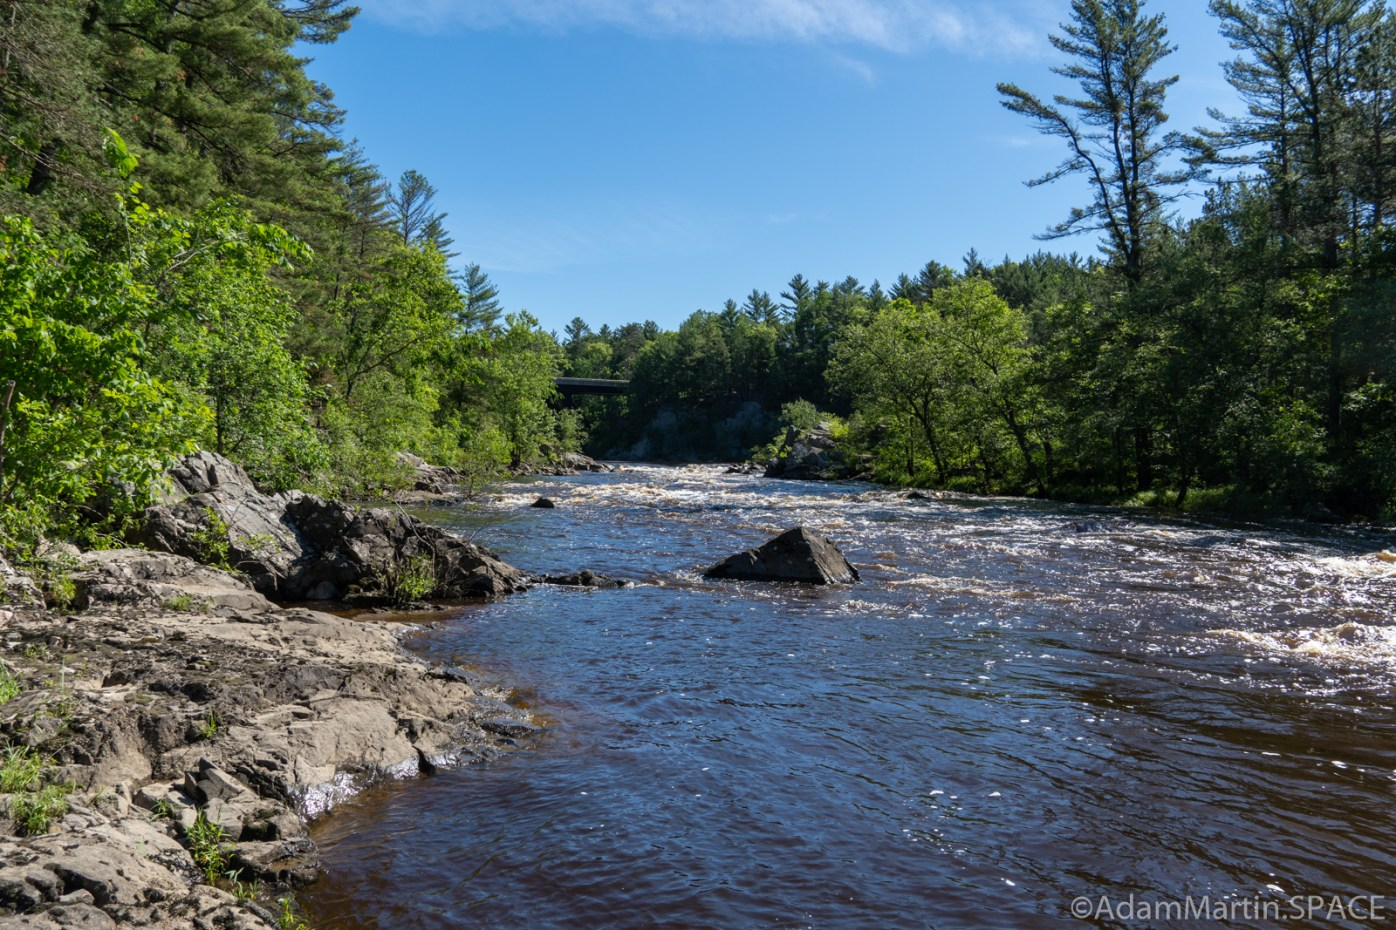 Black River Falls - Hwy K Rapids - Looking upstream from the ground/river level